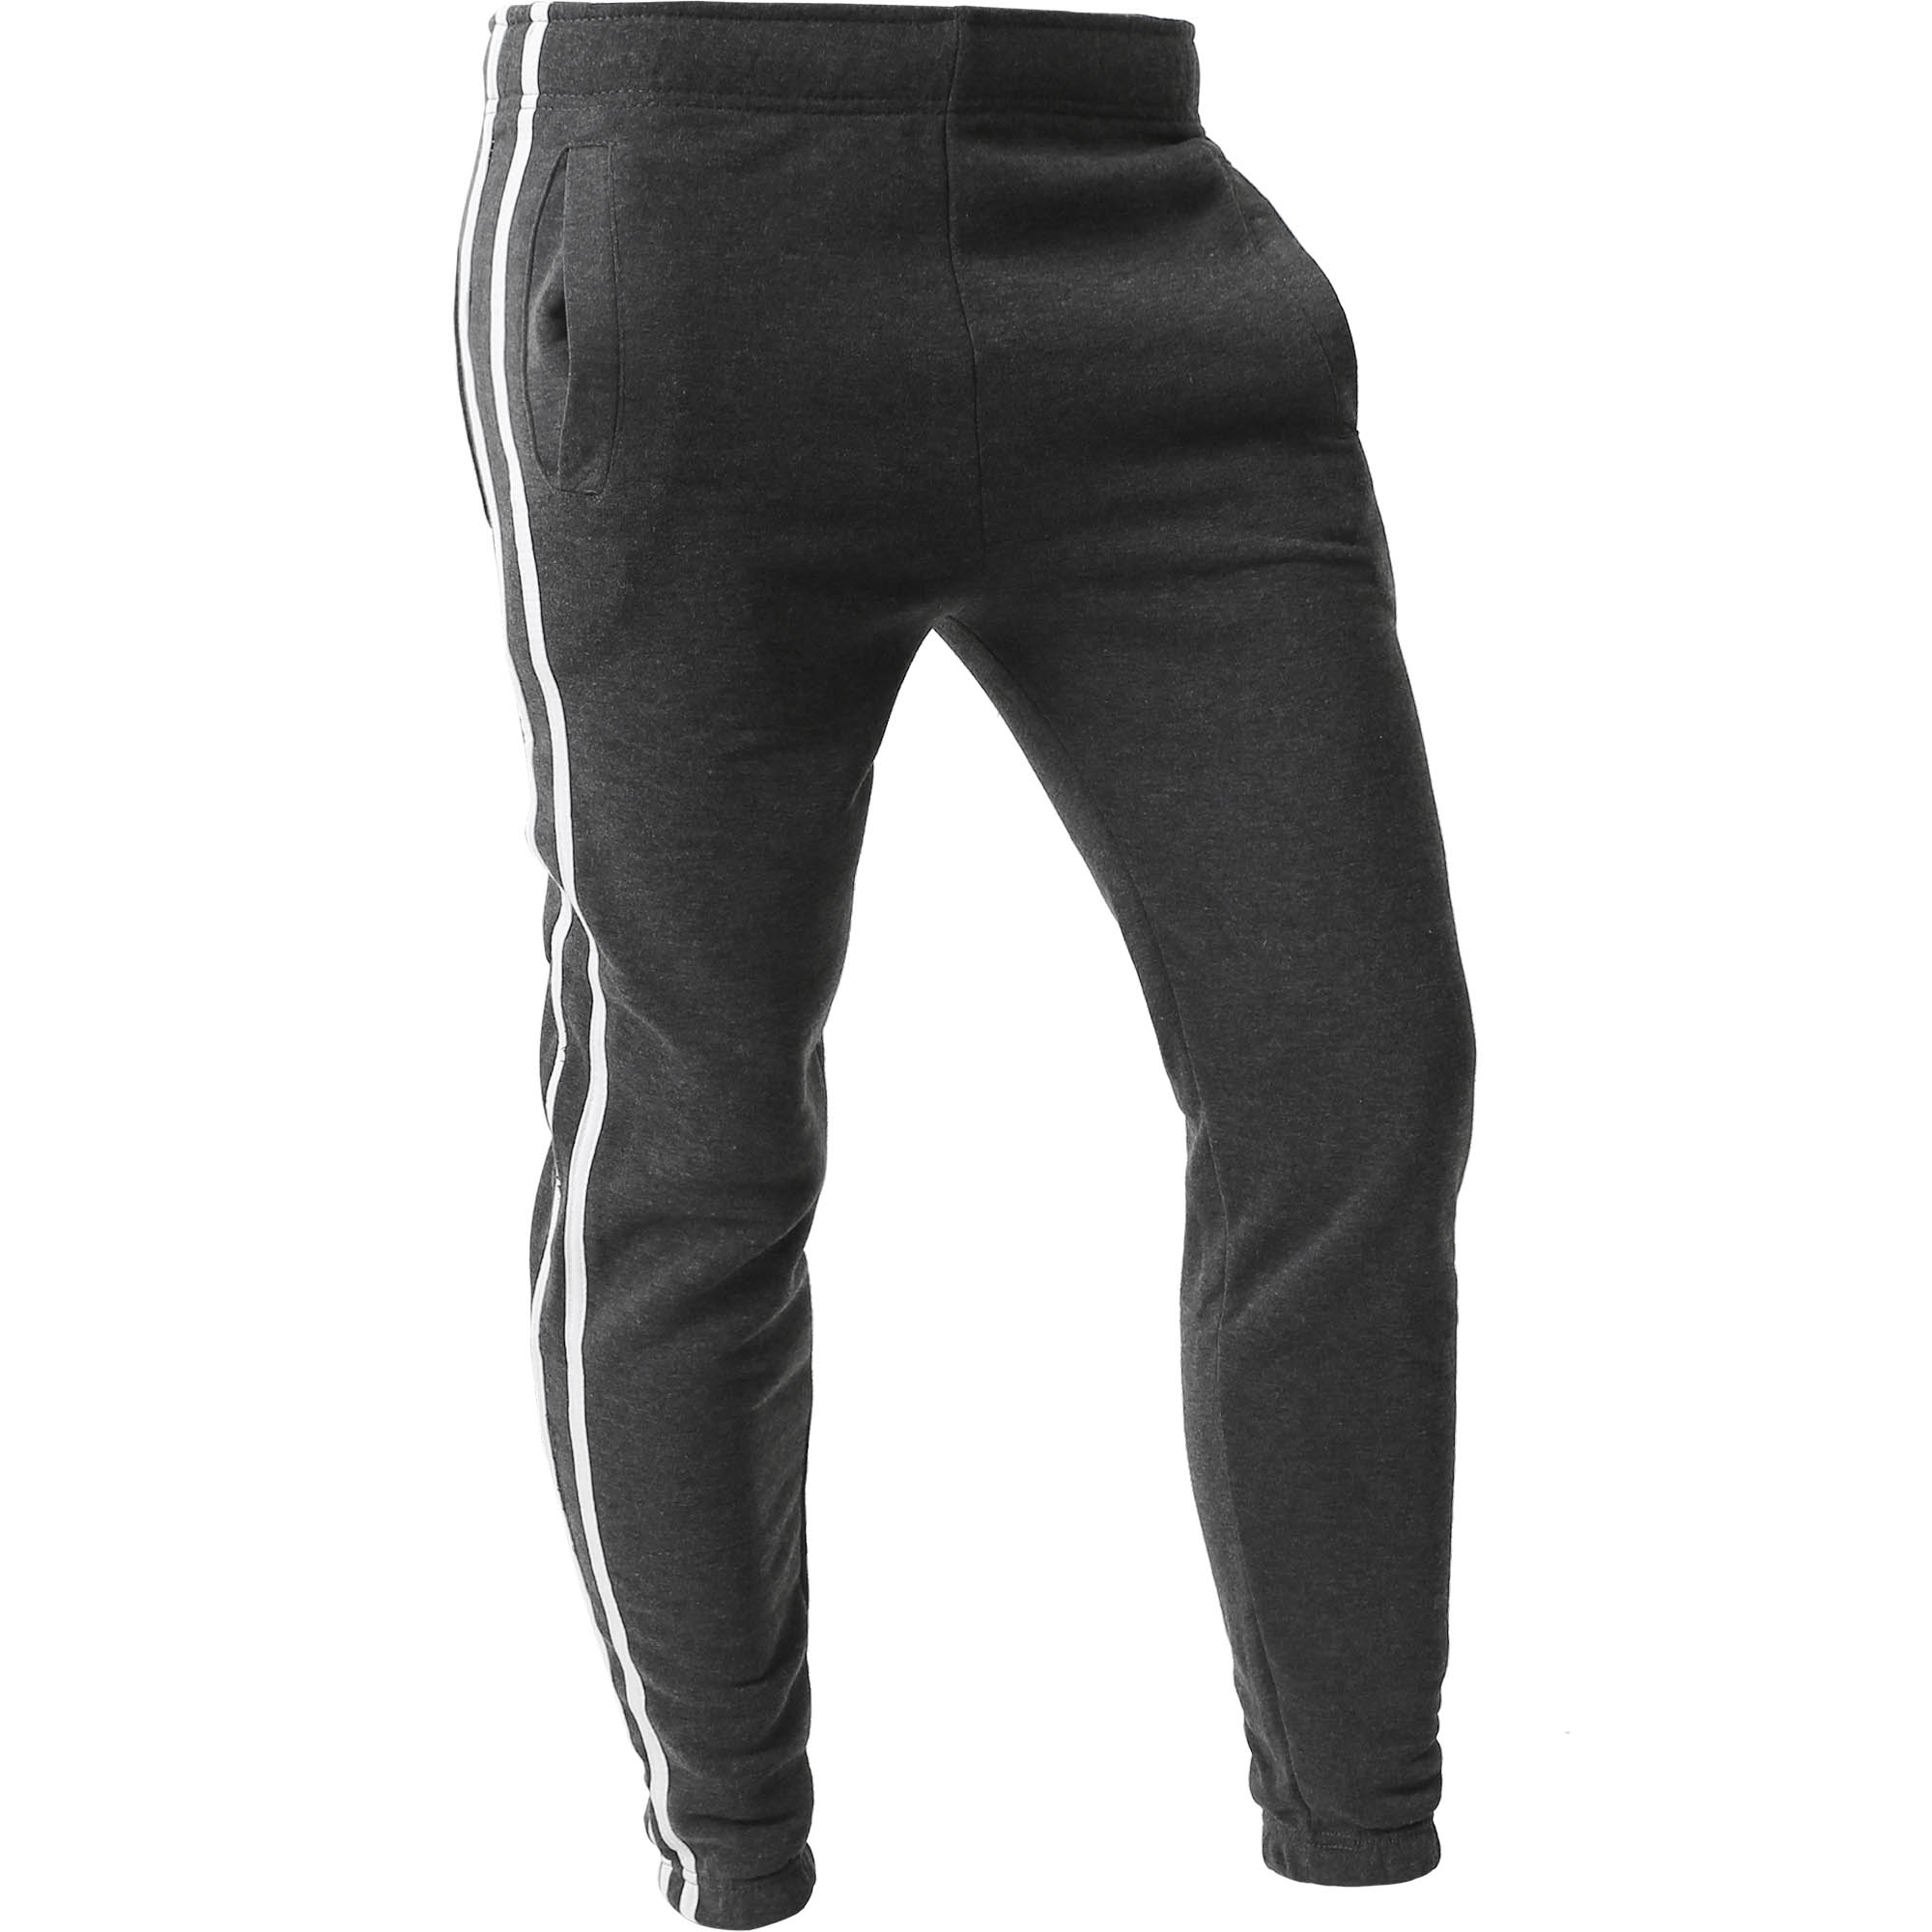 Mens Stripe Jogger Pants Lightweight Training Sweatpants Fleece Casual Elastic Athletic Activewear